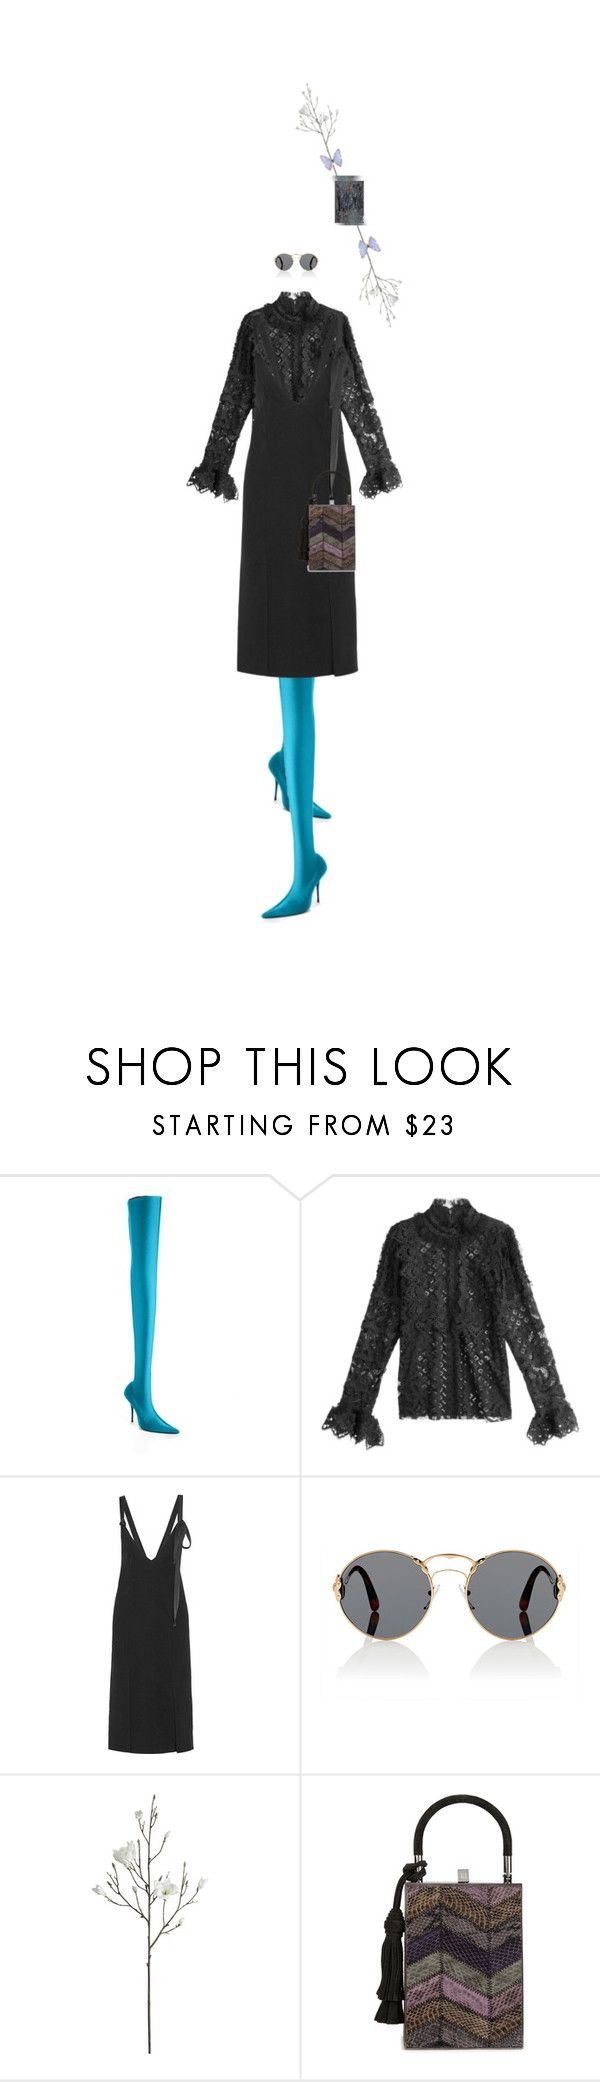 """""""Untitled #1685"""" by maja-z-94 ❤ liked on Polyvore featuring Balenciaga, Anna Sui, By Malene Birger, Prada, Crate and Barrel, Jill Haber and NOVICA"""